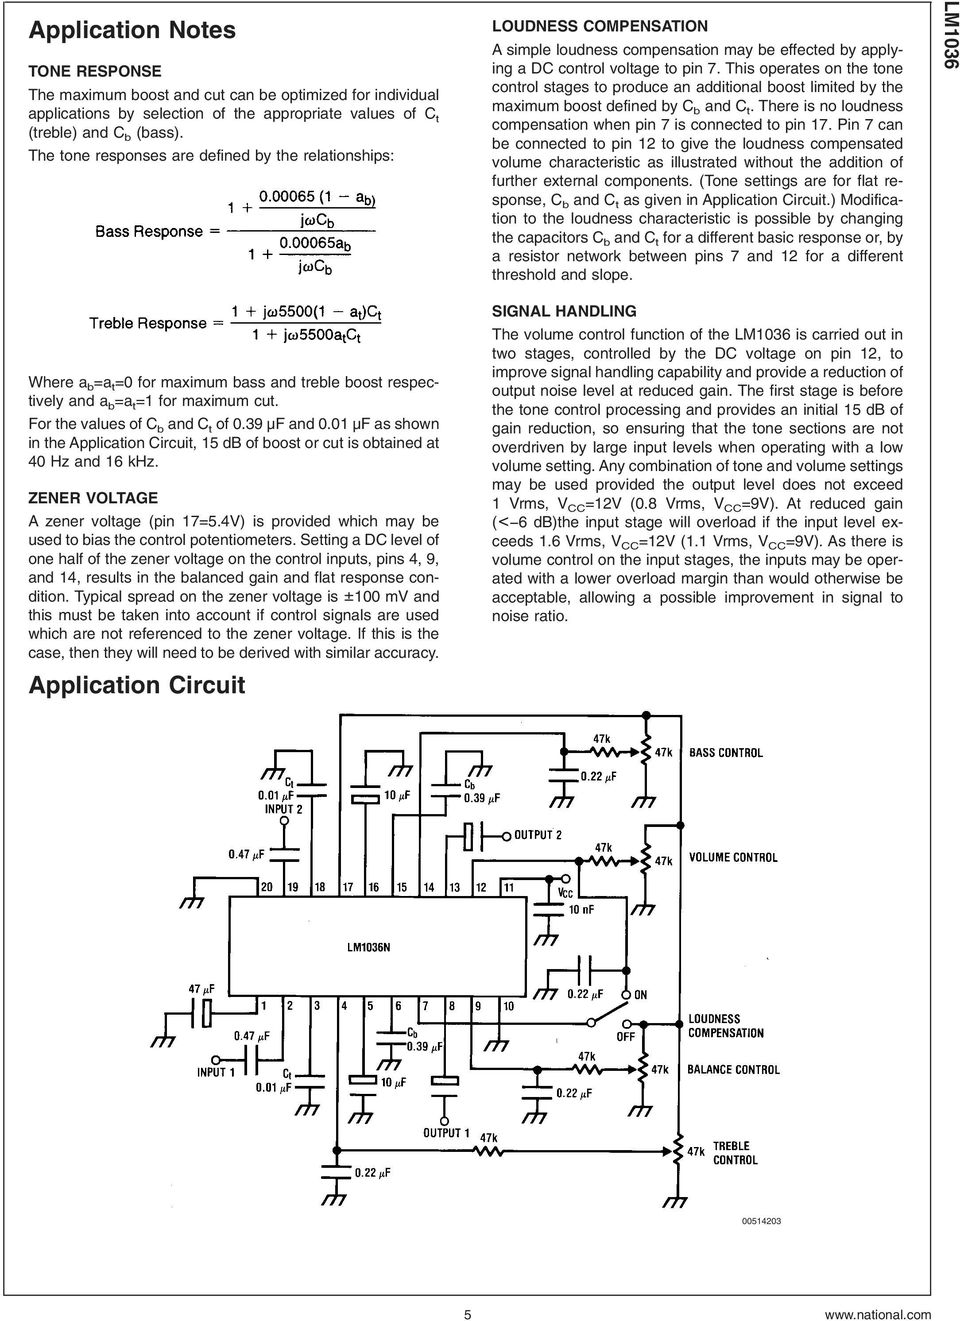 Lm1036 Dual Dc Operated Tone Volume Balance Circuit Pdf 45w Power Amplifier Include Control 01 F As Shown In The Application 15 Db Of Boost Or Cut Is